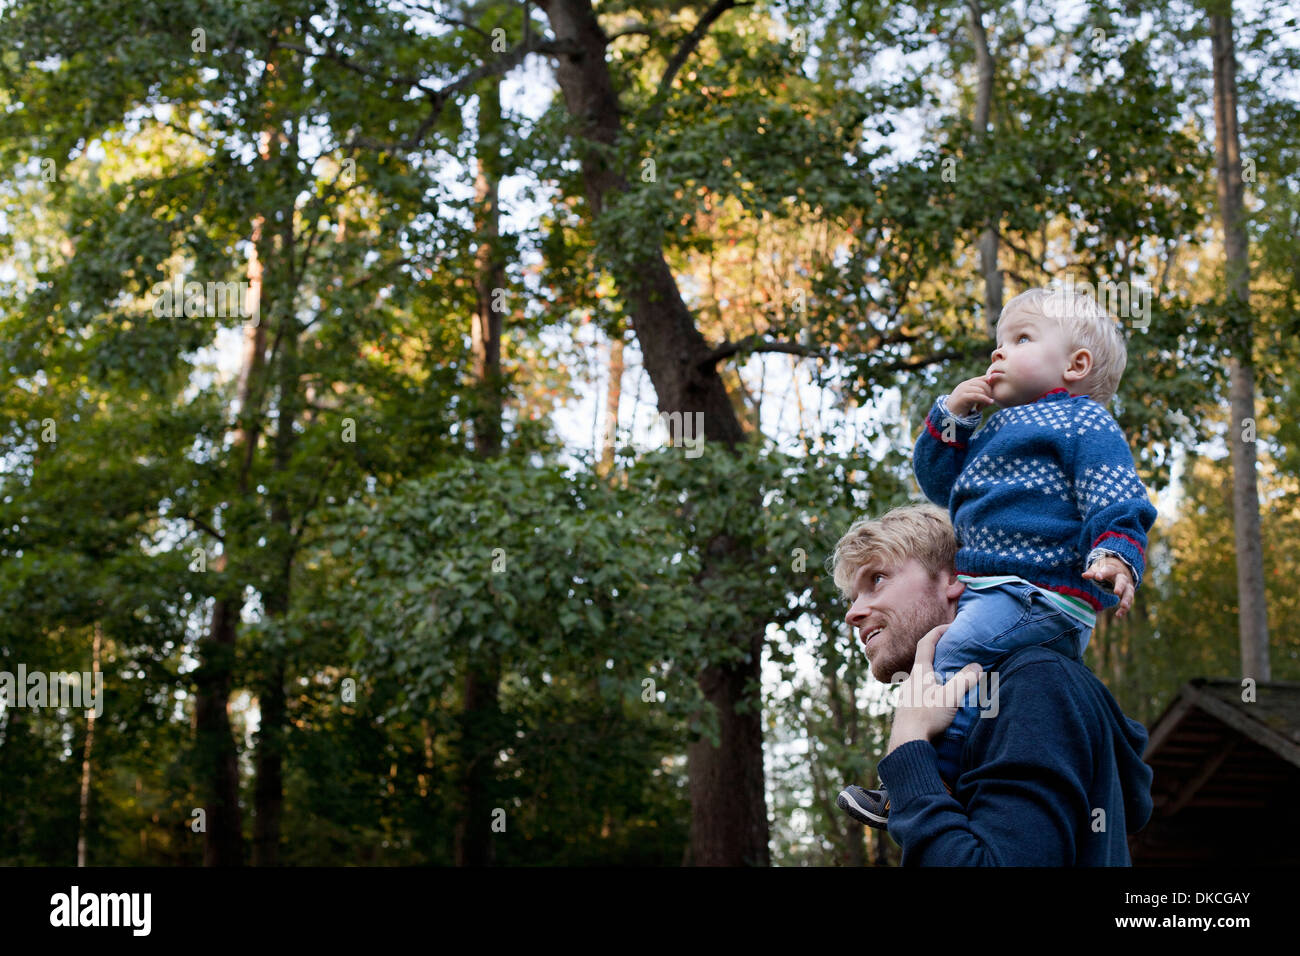 Little boy on father's shoulders - Stock Image